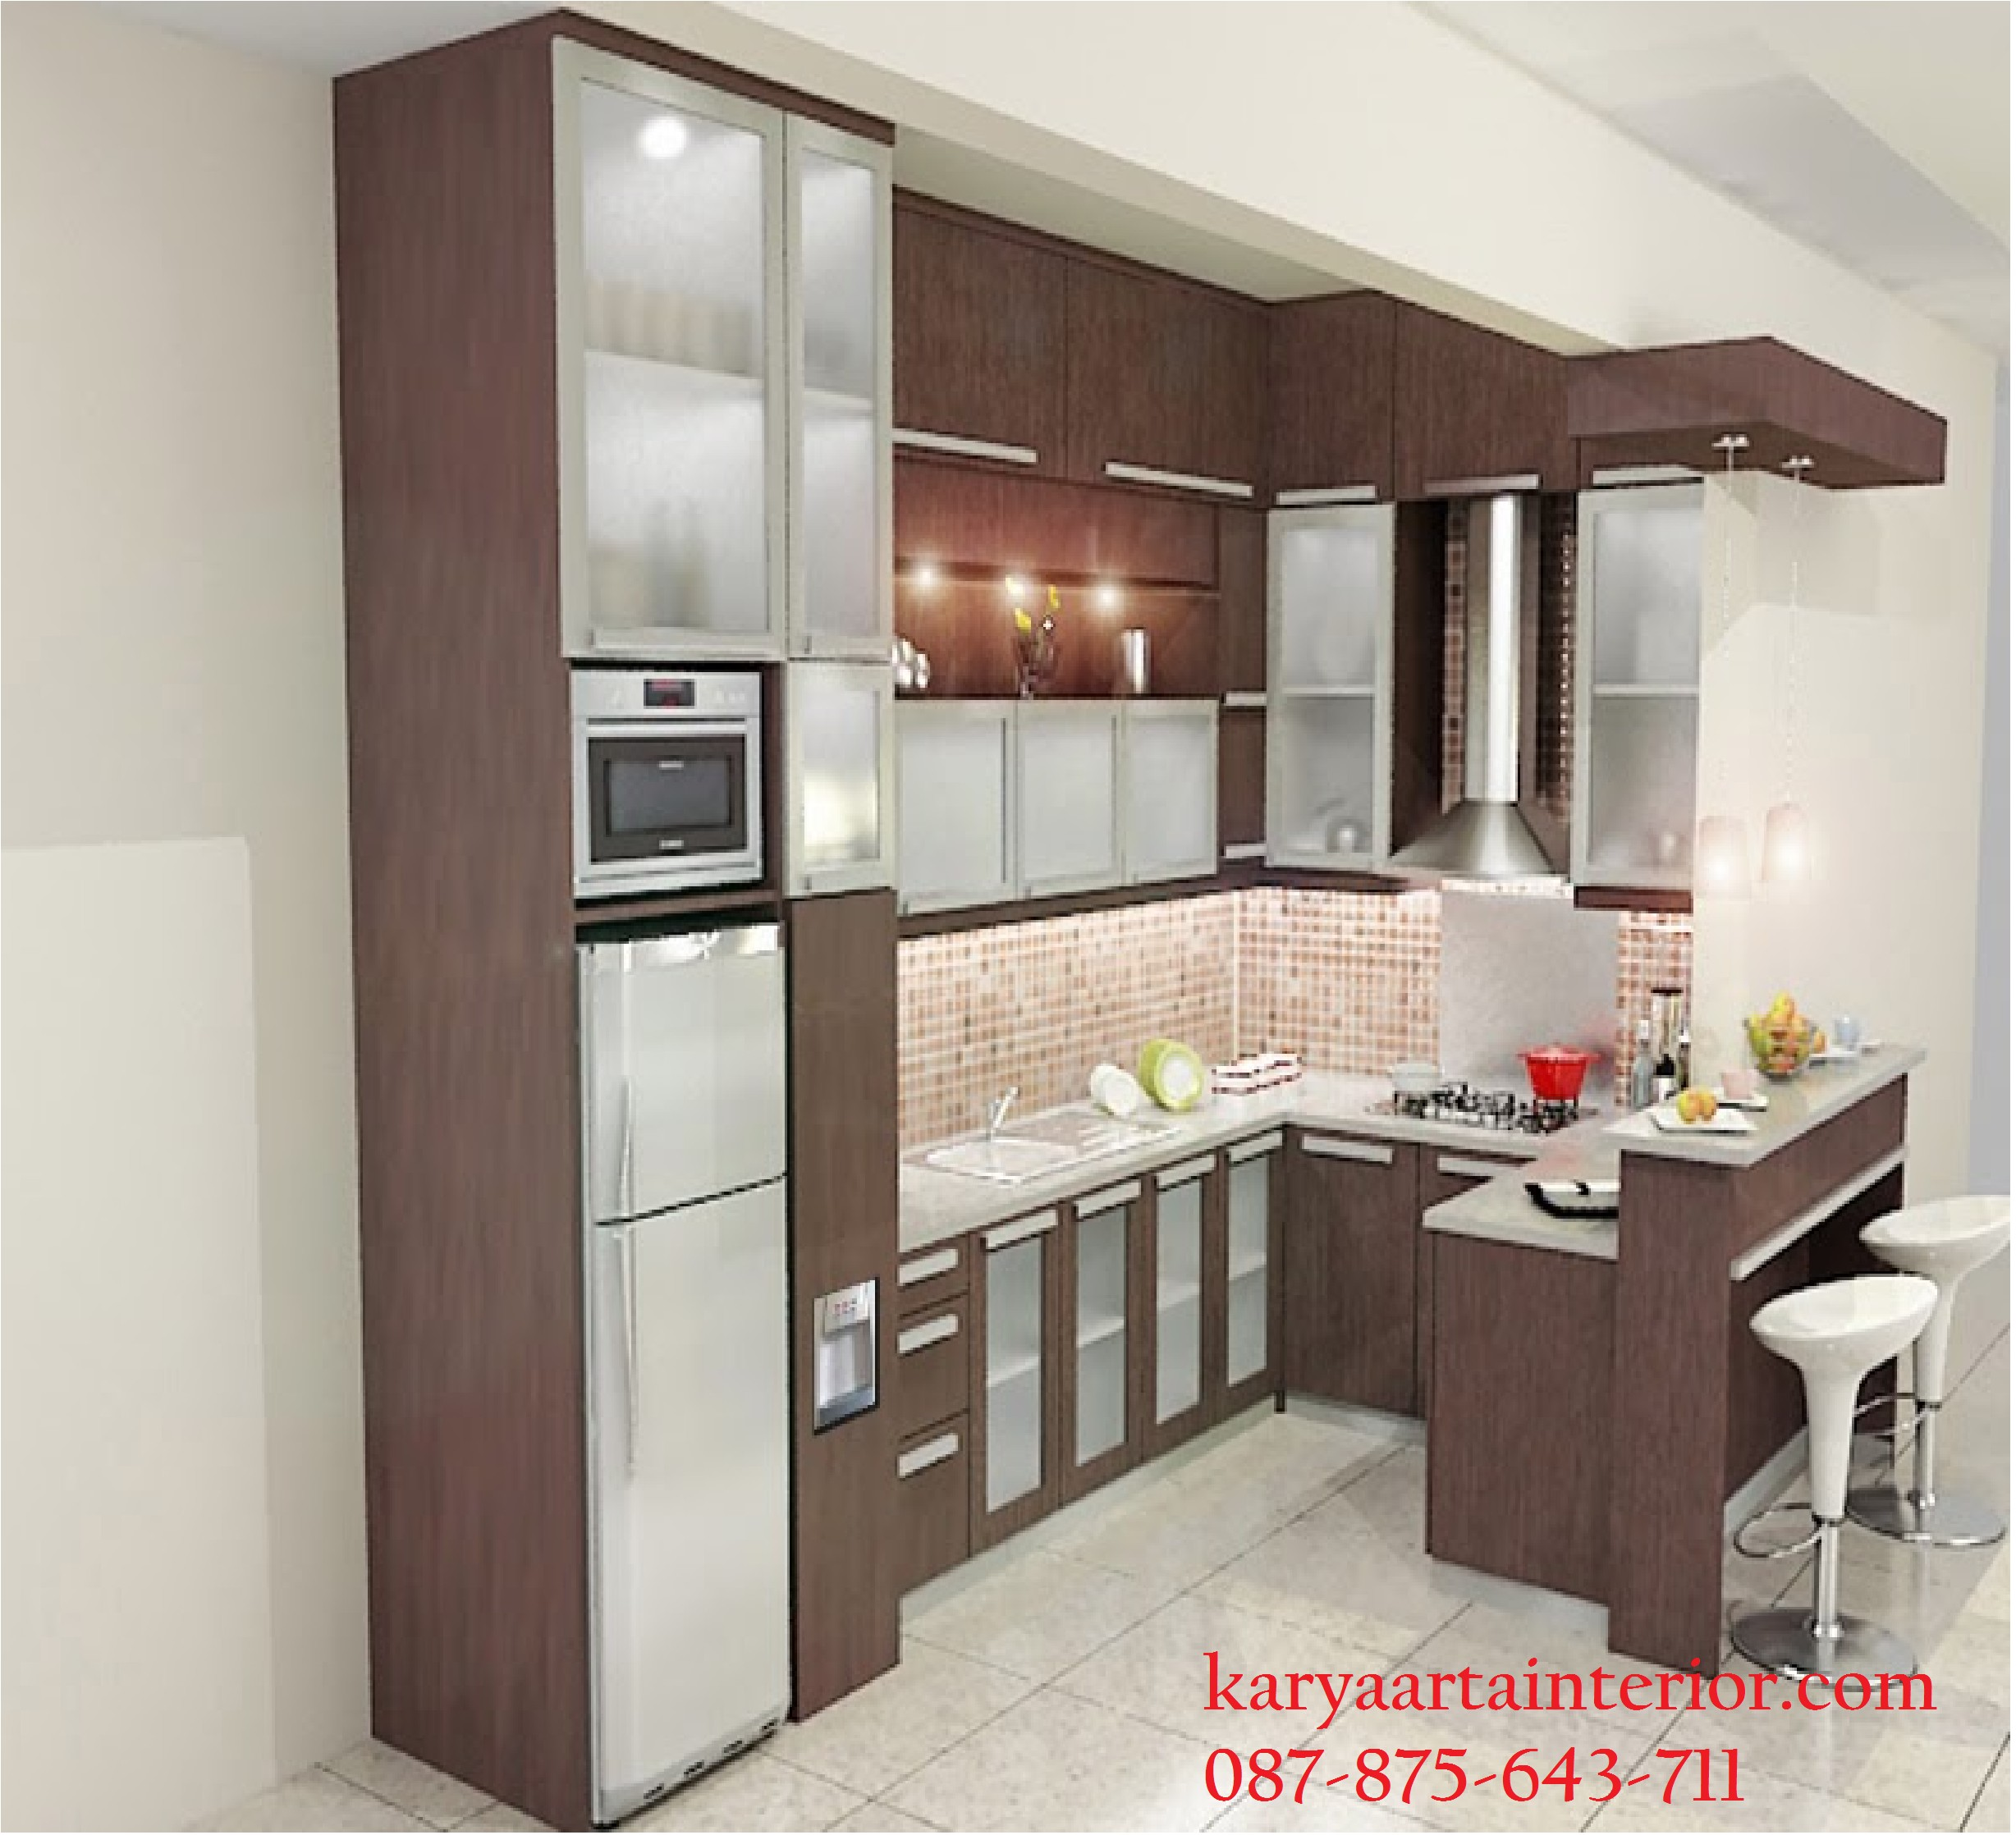 Desain Kitchen Set Minimalis Mini Bar Karya Arta Interior